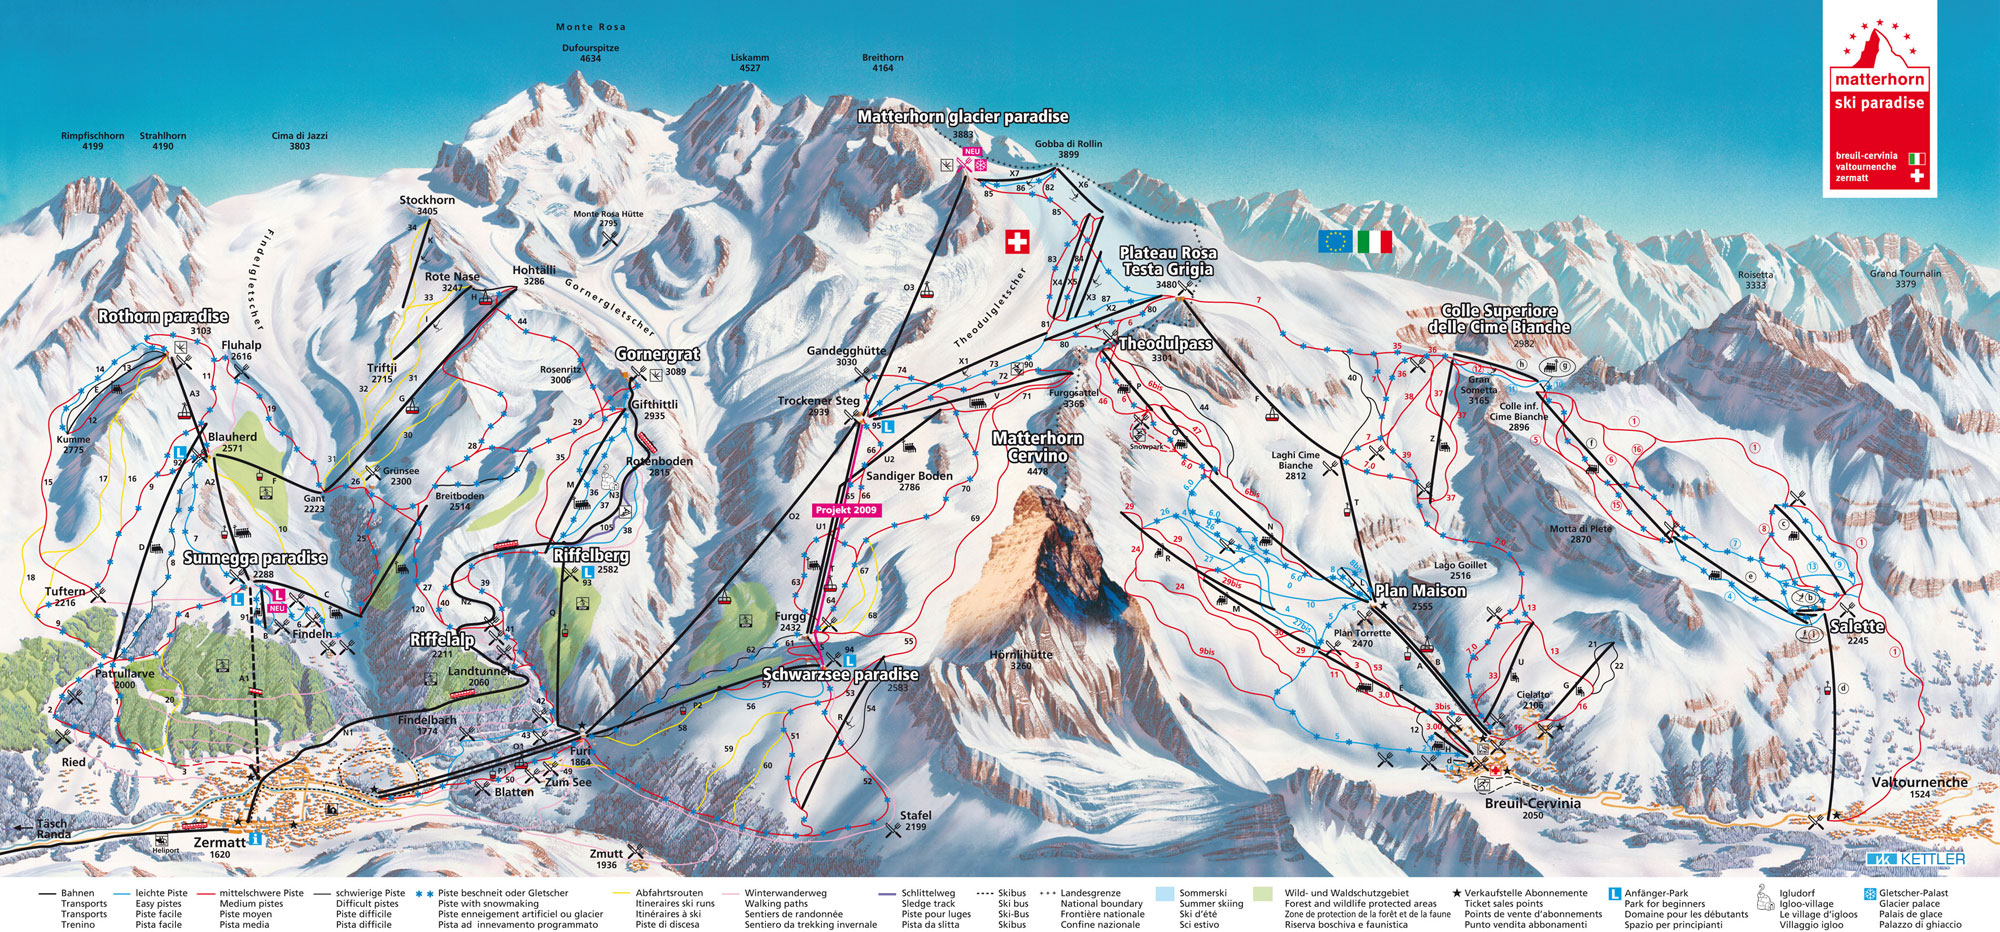 https://skitours.com.ua/sites/default/files/images/resorts/Switzerland/Matterhorn/Zermatt-Matterhorn-Map.jpg